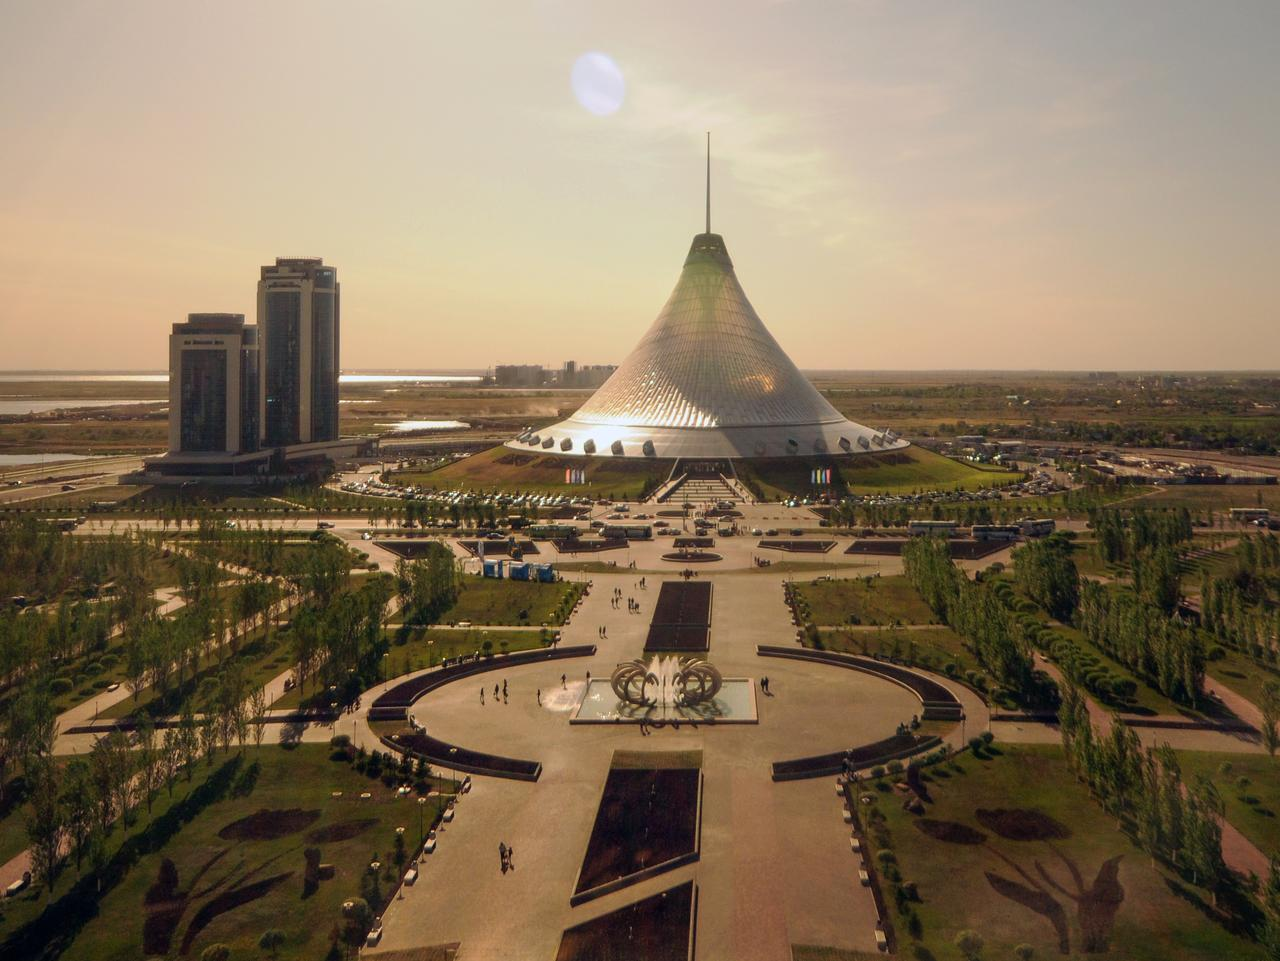 Astana, Kazakhstan - May 25, 2012: The Khan Shatyr is a large Supermarket and Event Center in Astana. The Architect of the building is Sir Norman Foster who tried to make the Transformation of that tent symboling a bit the nomad living style of the former Kazakh Nation.